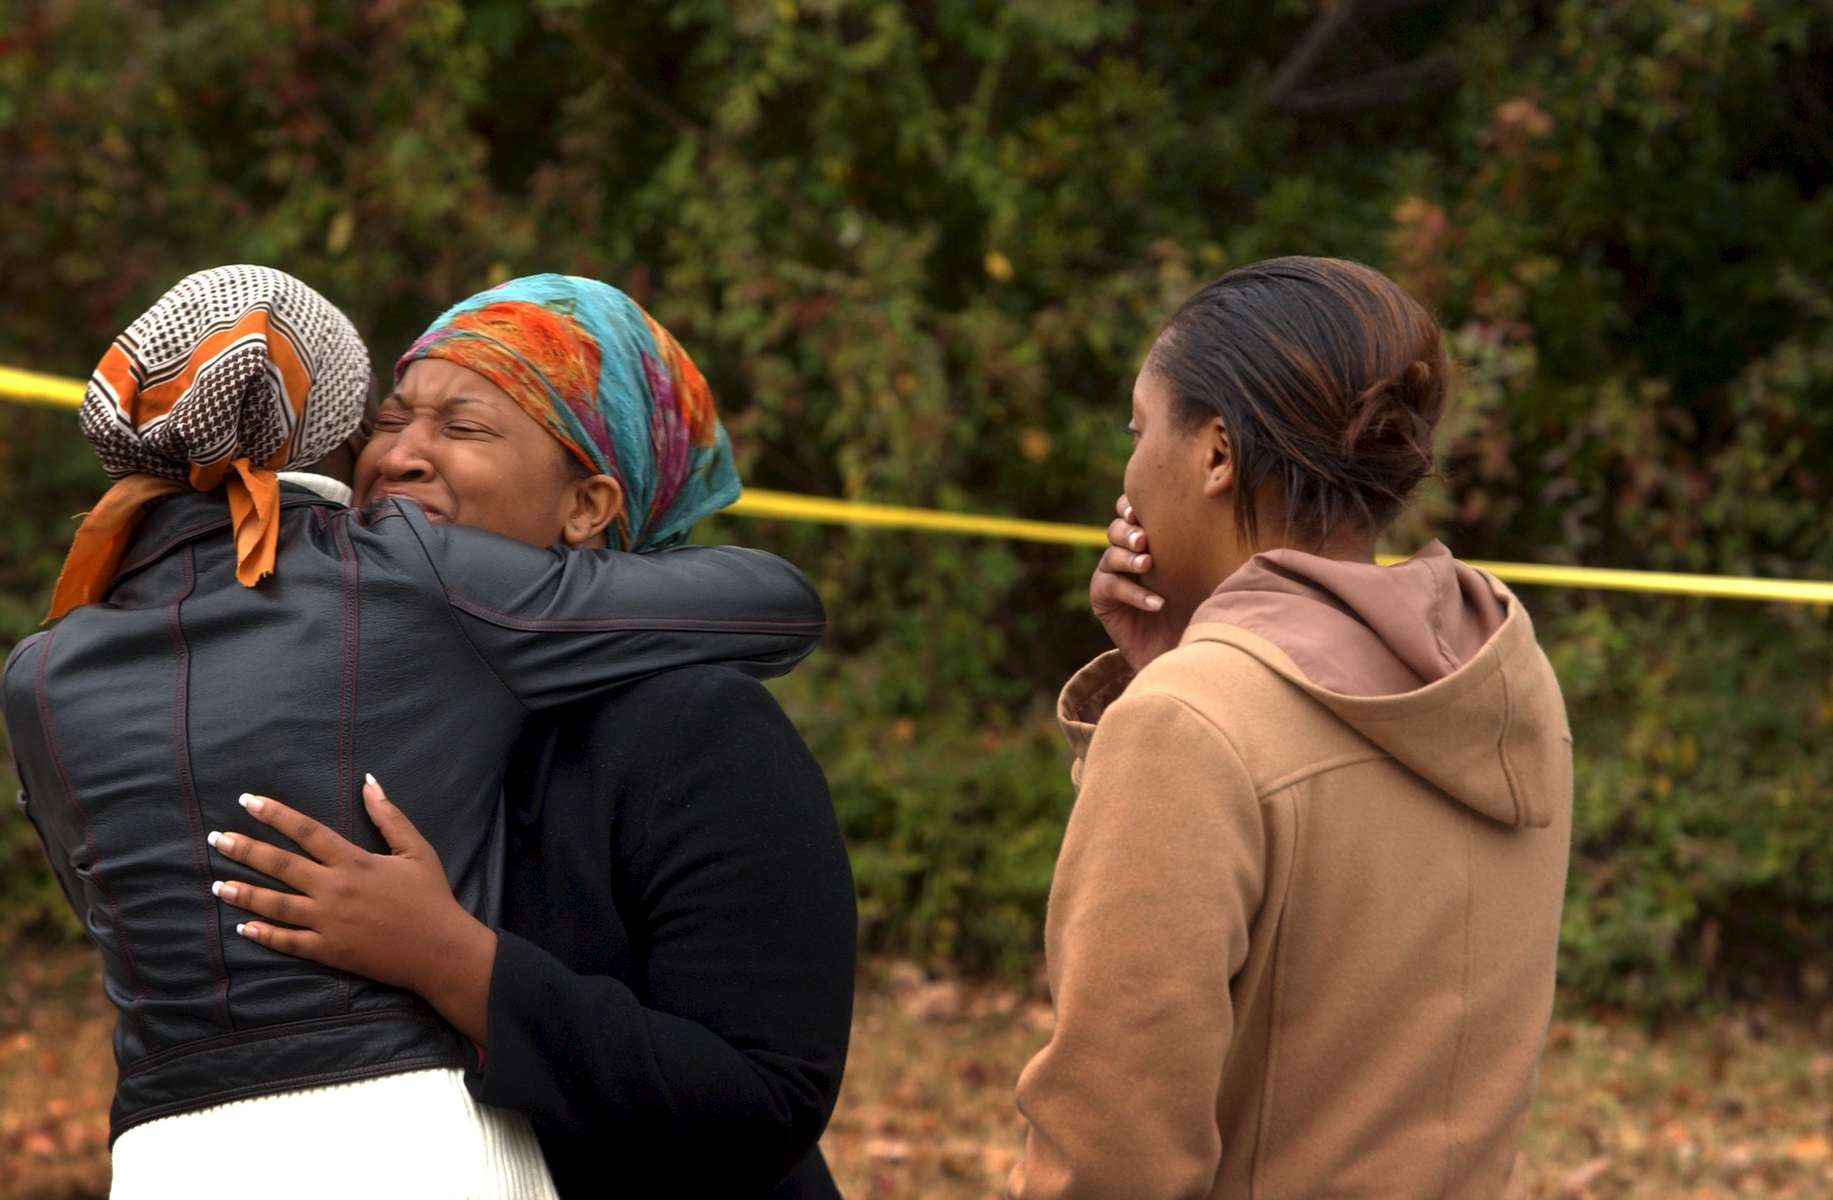 MURDERS2.NE.112005.SAS --  Friends of one of the shooting victims react as they arrive Sunday morning at 2222 Alpine Road in Durham where four men were shot to death and two others were injured Saturday night in what police are calling a home invasion. STAFF/SHER STONEMAN